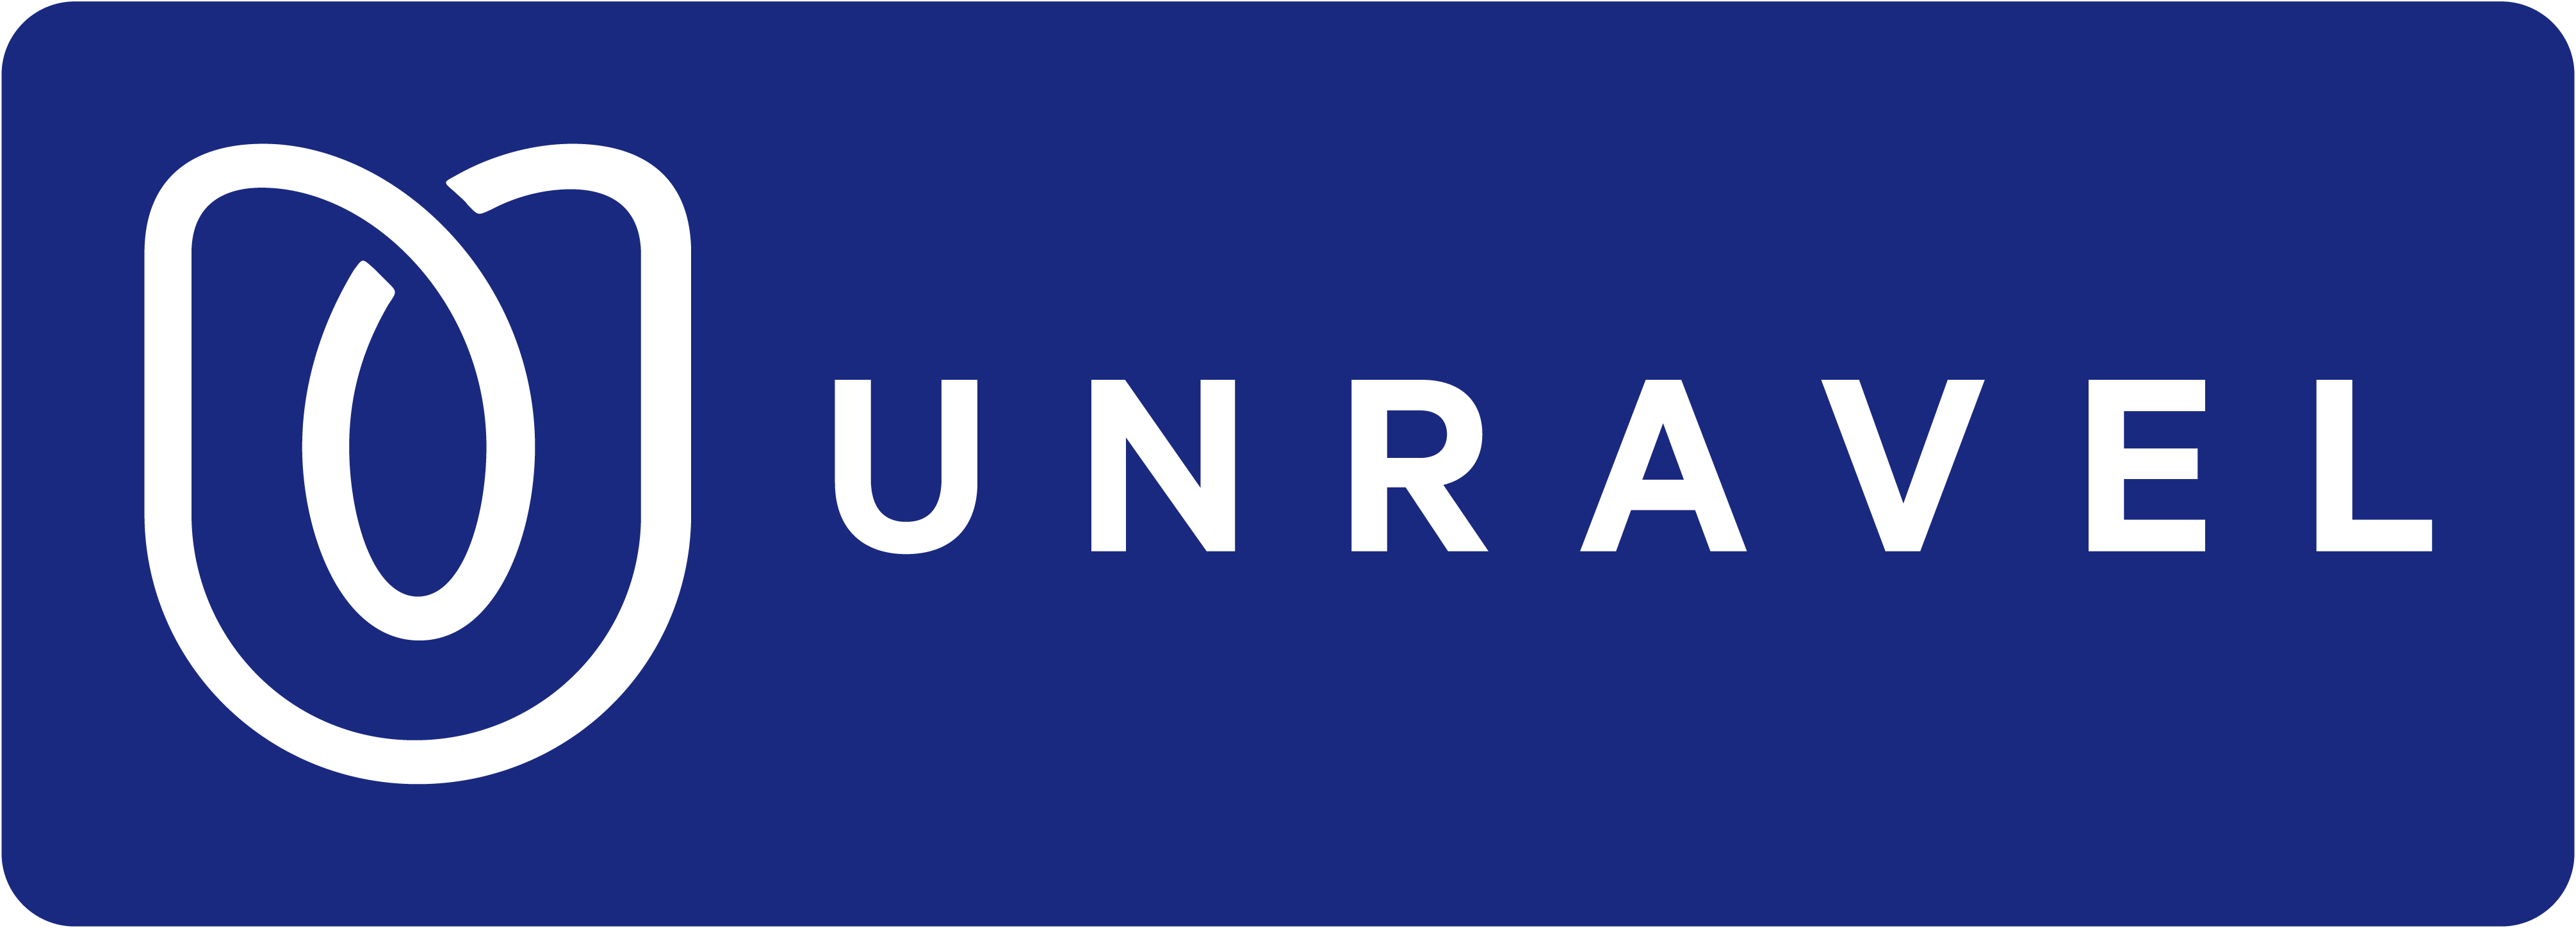 Unravel Analytics Ltd.